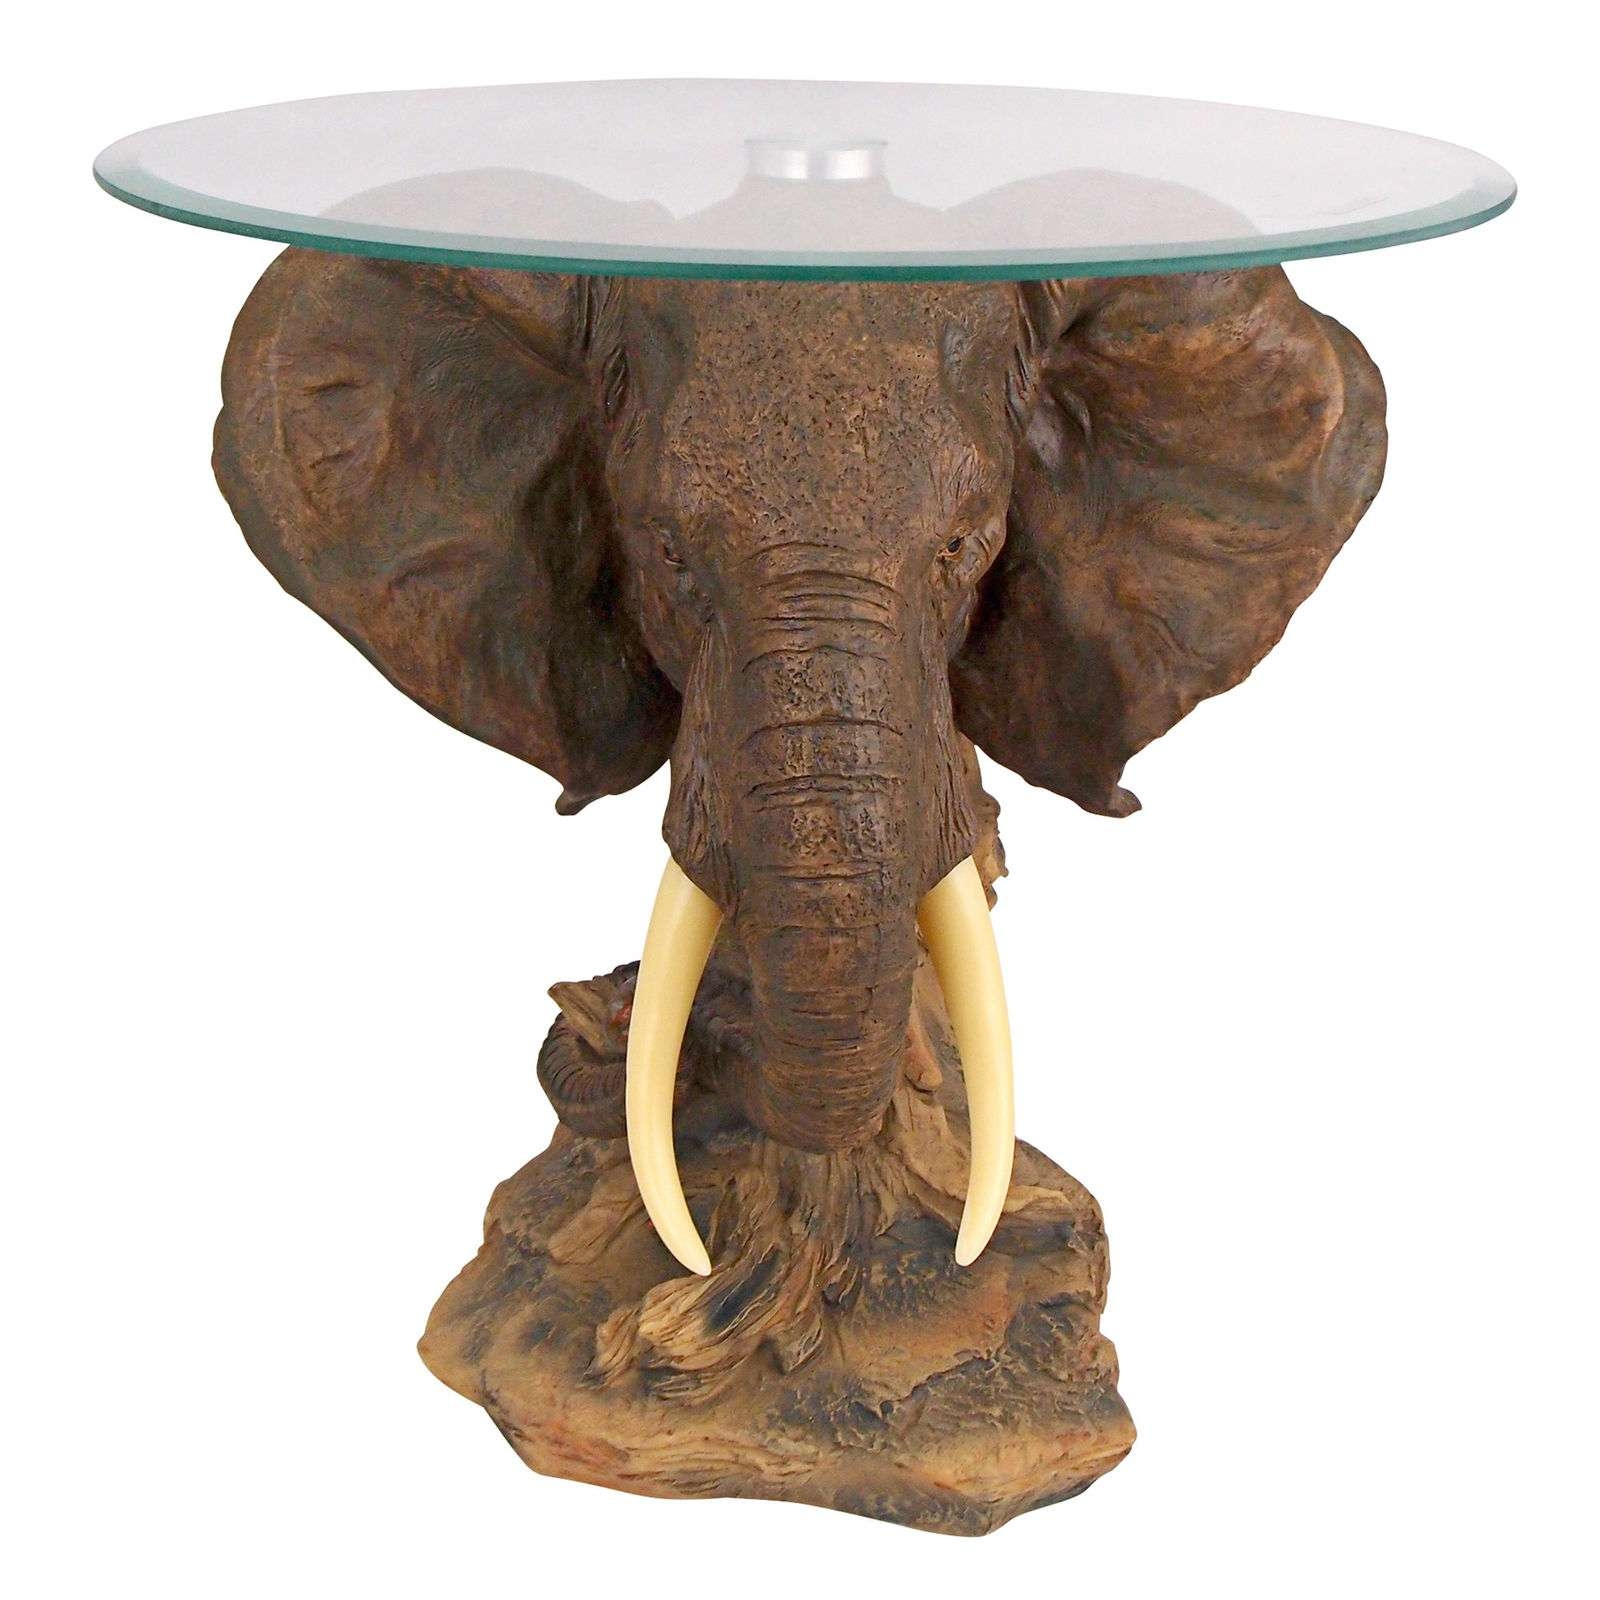 Well Known Elephant Coffee Tables With Regard To Design Toscano Lord Earl Houghton's Trophy Elephant Coffee Table (View 20 of 20)